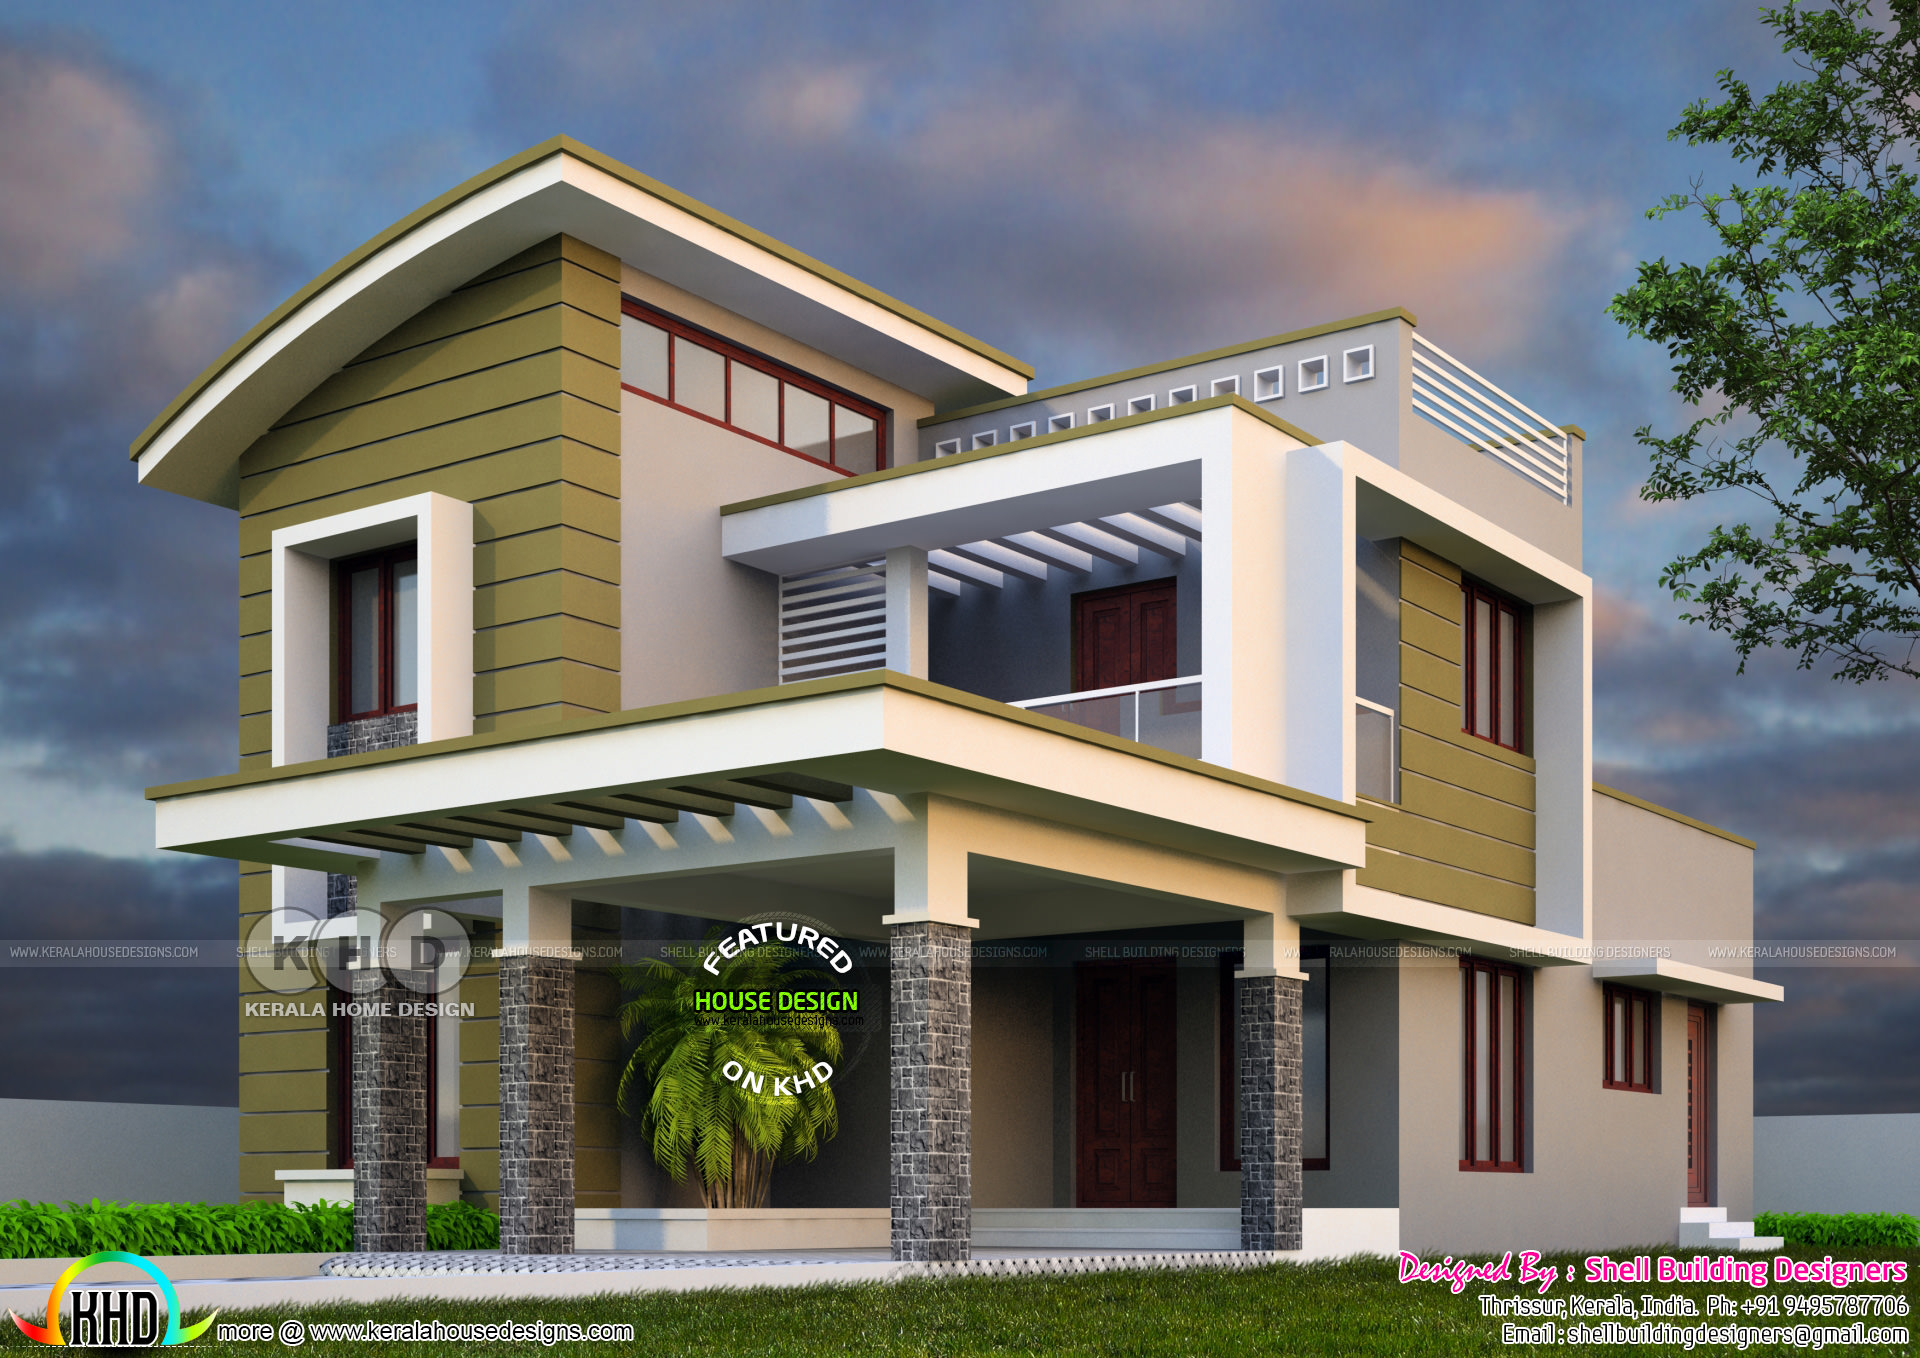 2375 sq ft 4 bedroom modern house plan kerala home for Kerala modern house designs